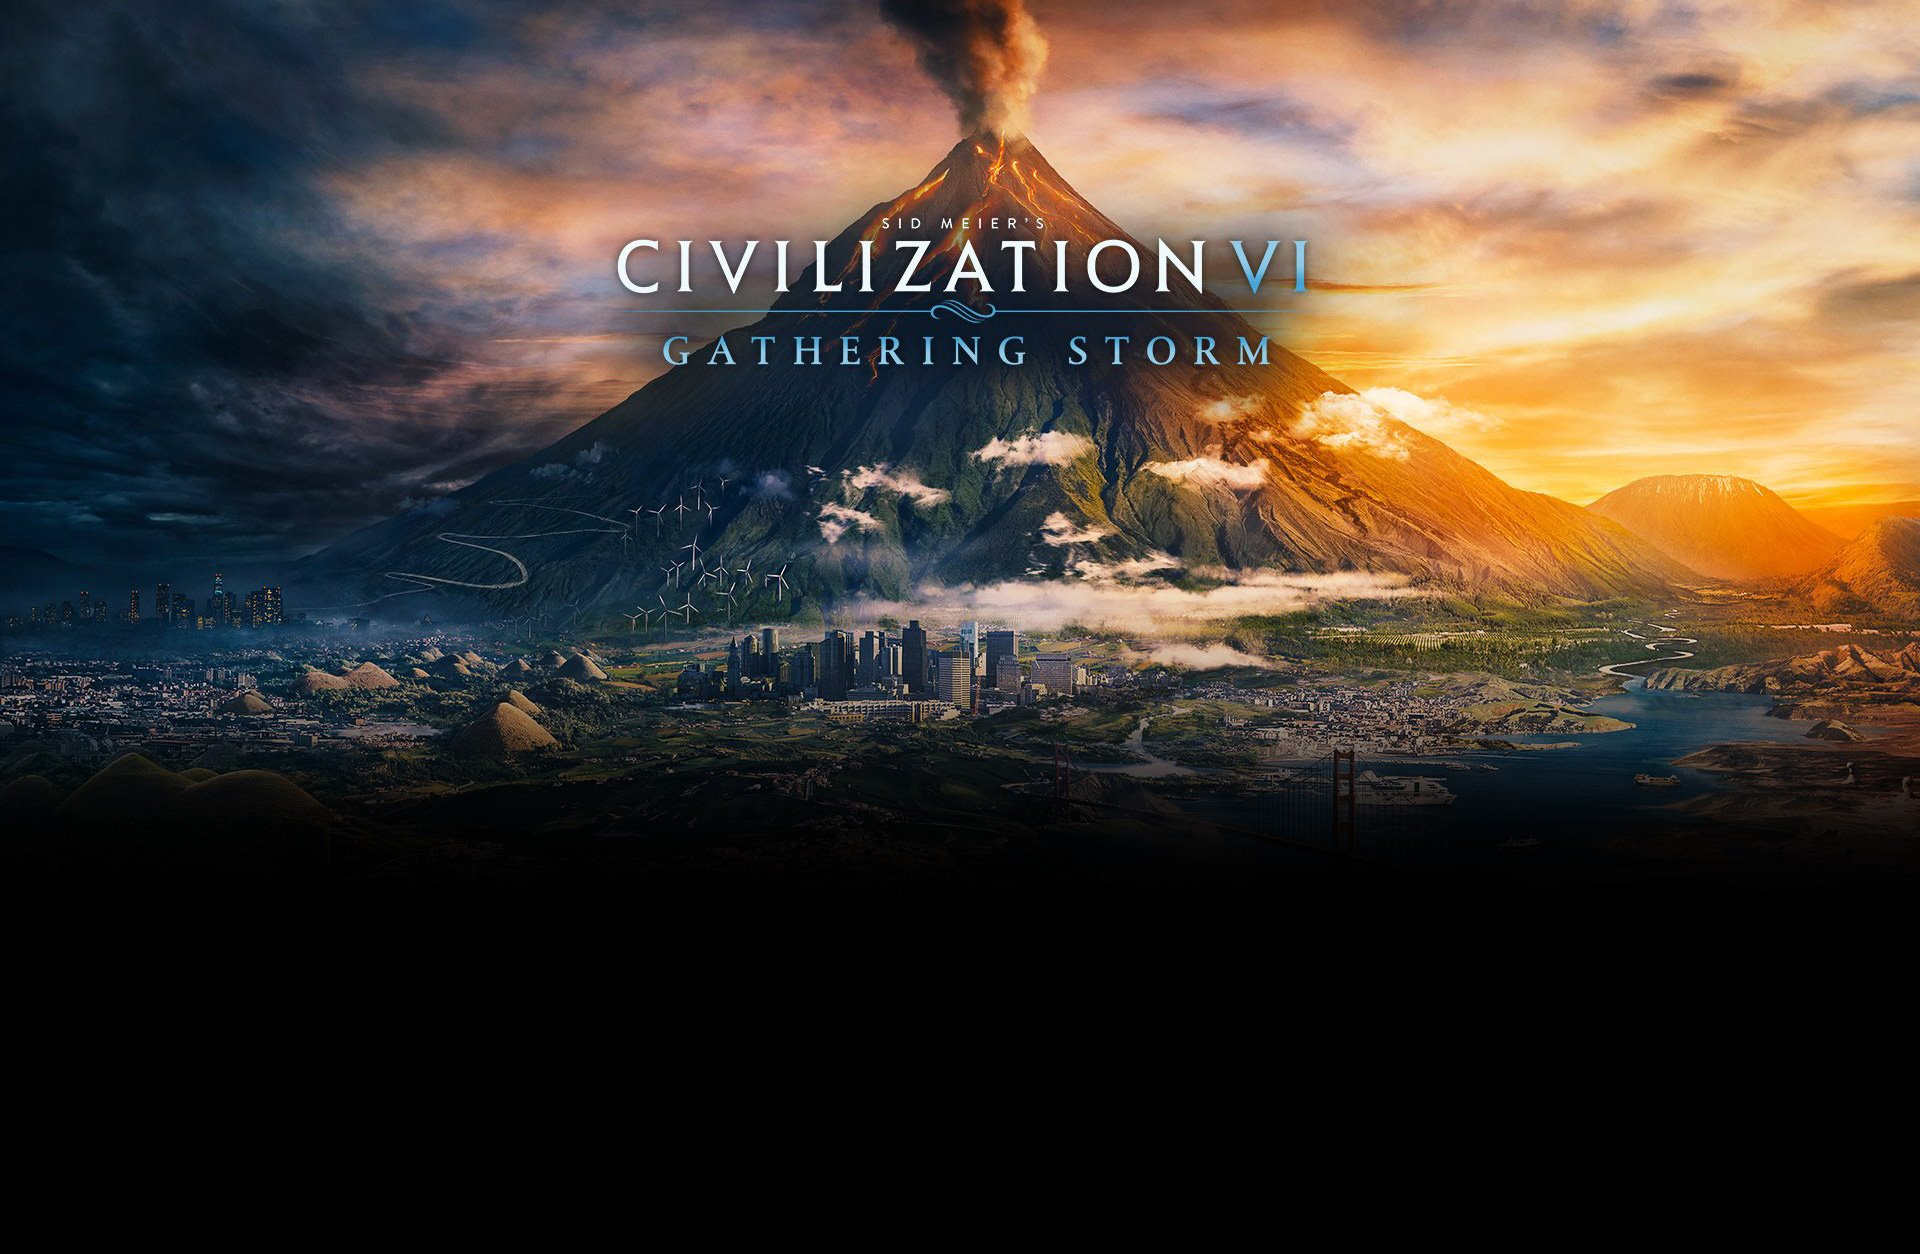 Сыграйте в Sid Meier's Civilization 6 бесплатно